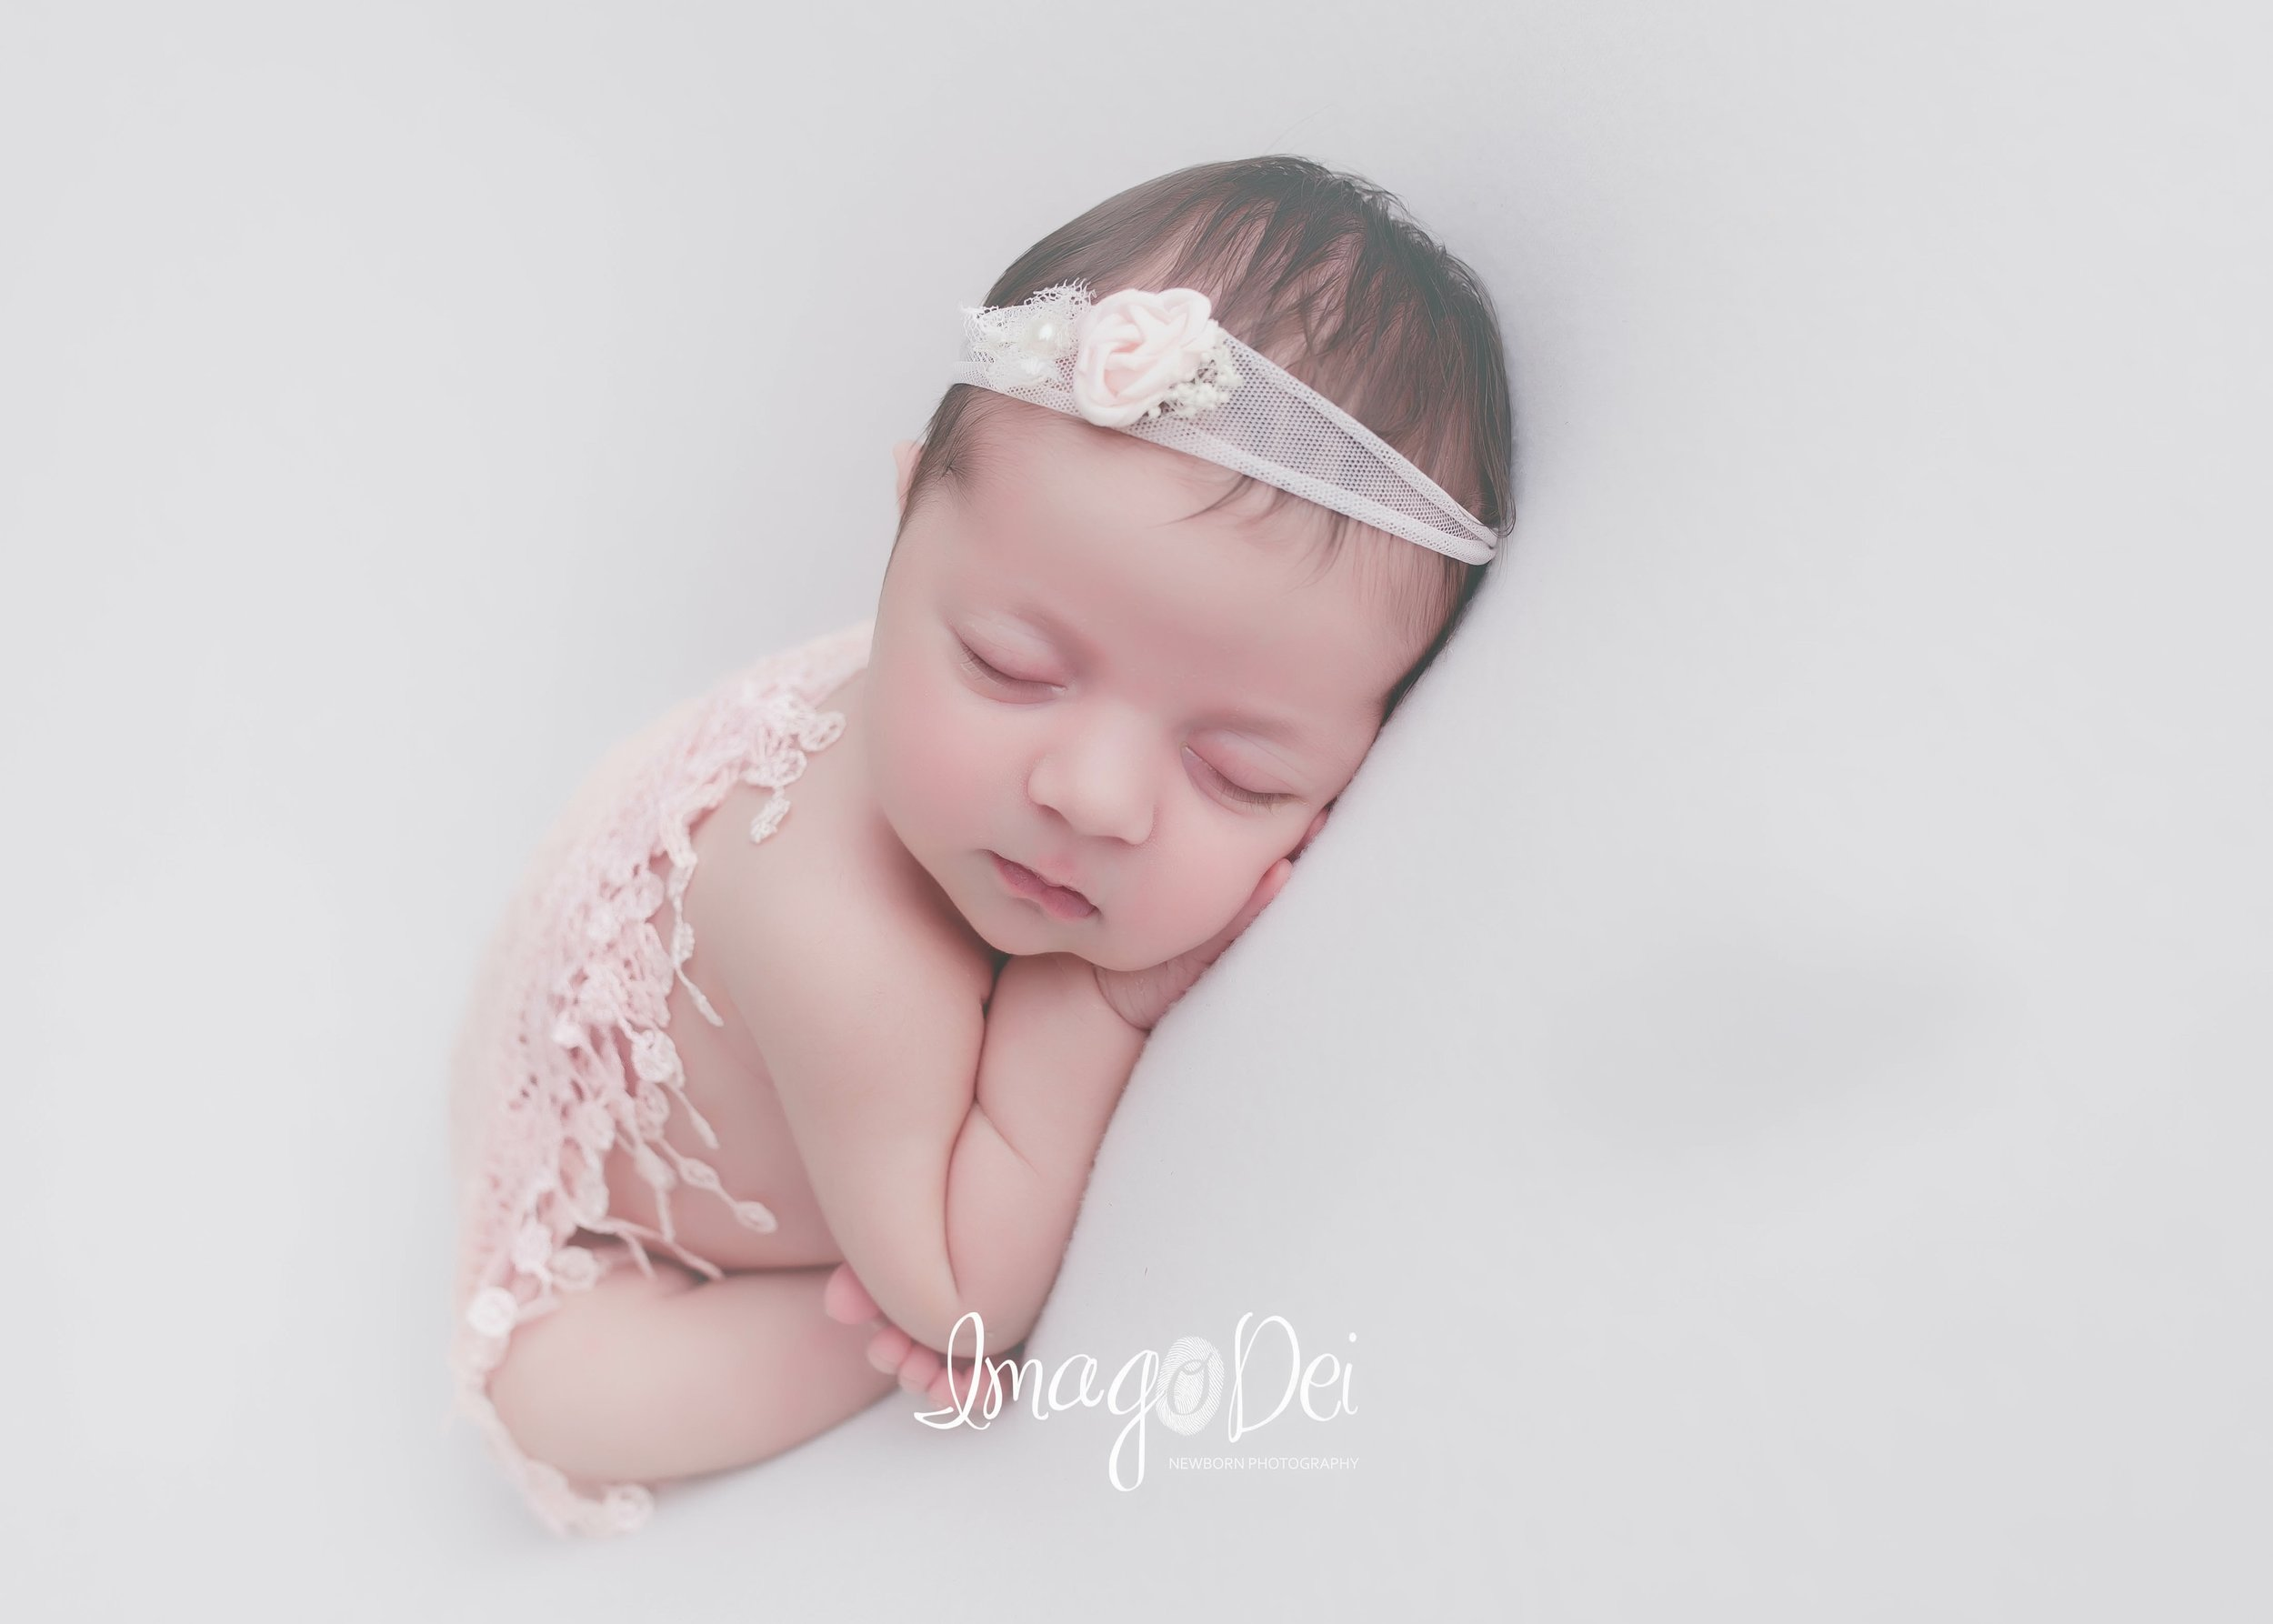 "- ""Crystal created nothing short of a picture-perfect photo session. She cared for our sweet lil girl with the utmost of love while making the whole session easy on us and a true delight. The resultant photos were inexplicably perfect and timeless; exactly what we wanted! Can't recommend anyone better for an adorable newborn session!""-Amanda Z"